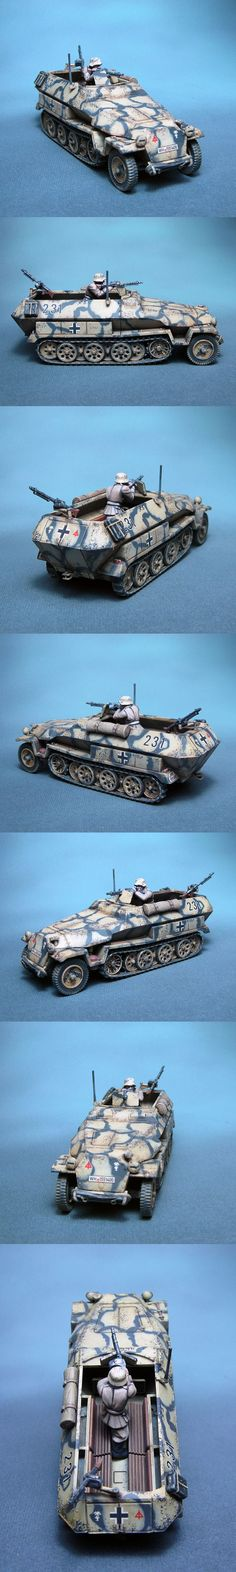 SdKfz 251 Ausf C 15. PzD Afrika Korps Scale: 1/56(28mm) Manufacturer: Warlord Games UK Game: BOLT ACTION Painted by: OMP(Olsianon Miniatures Painting)